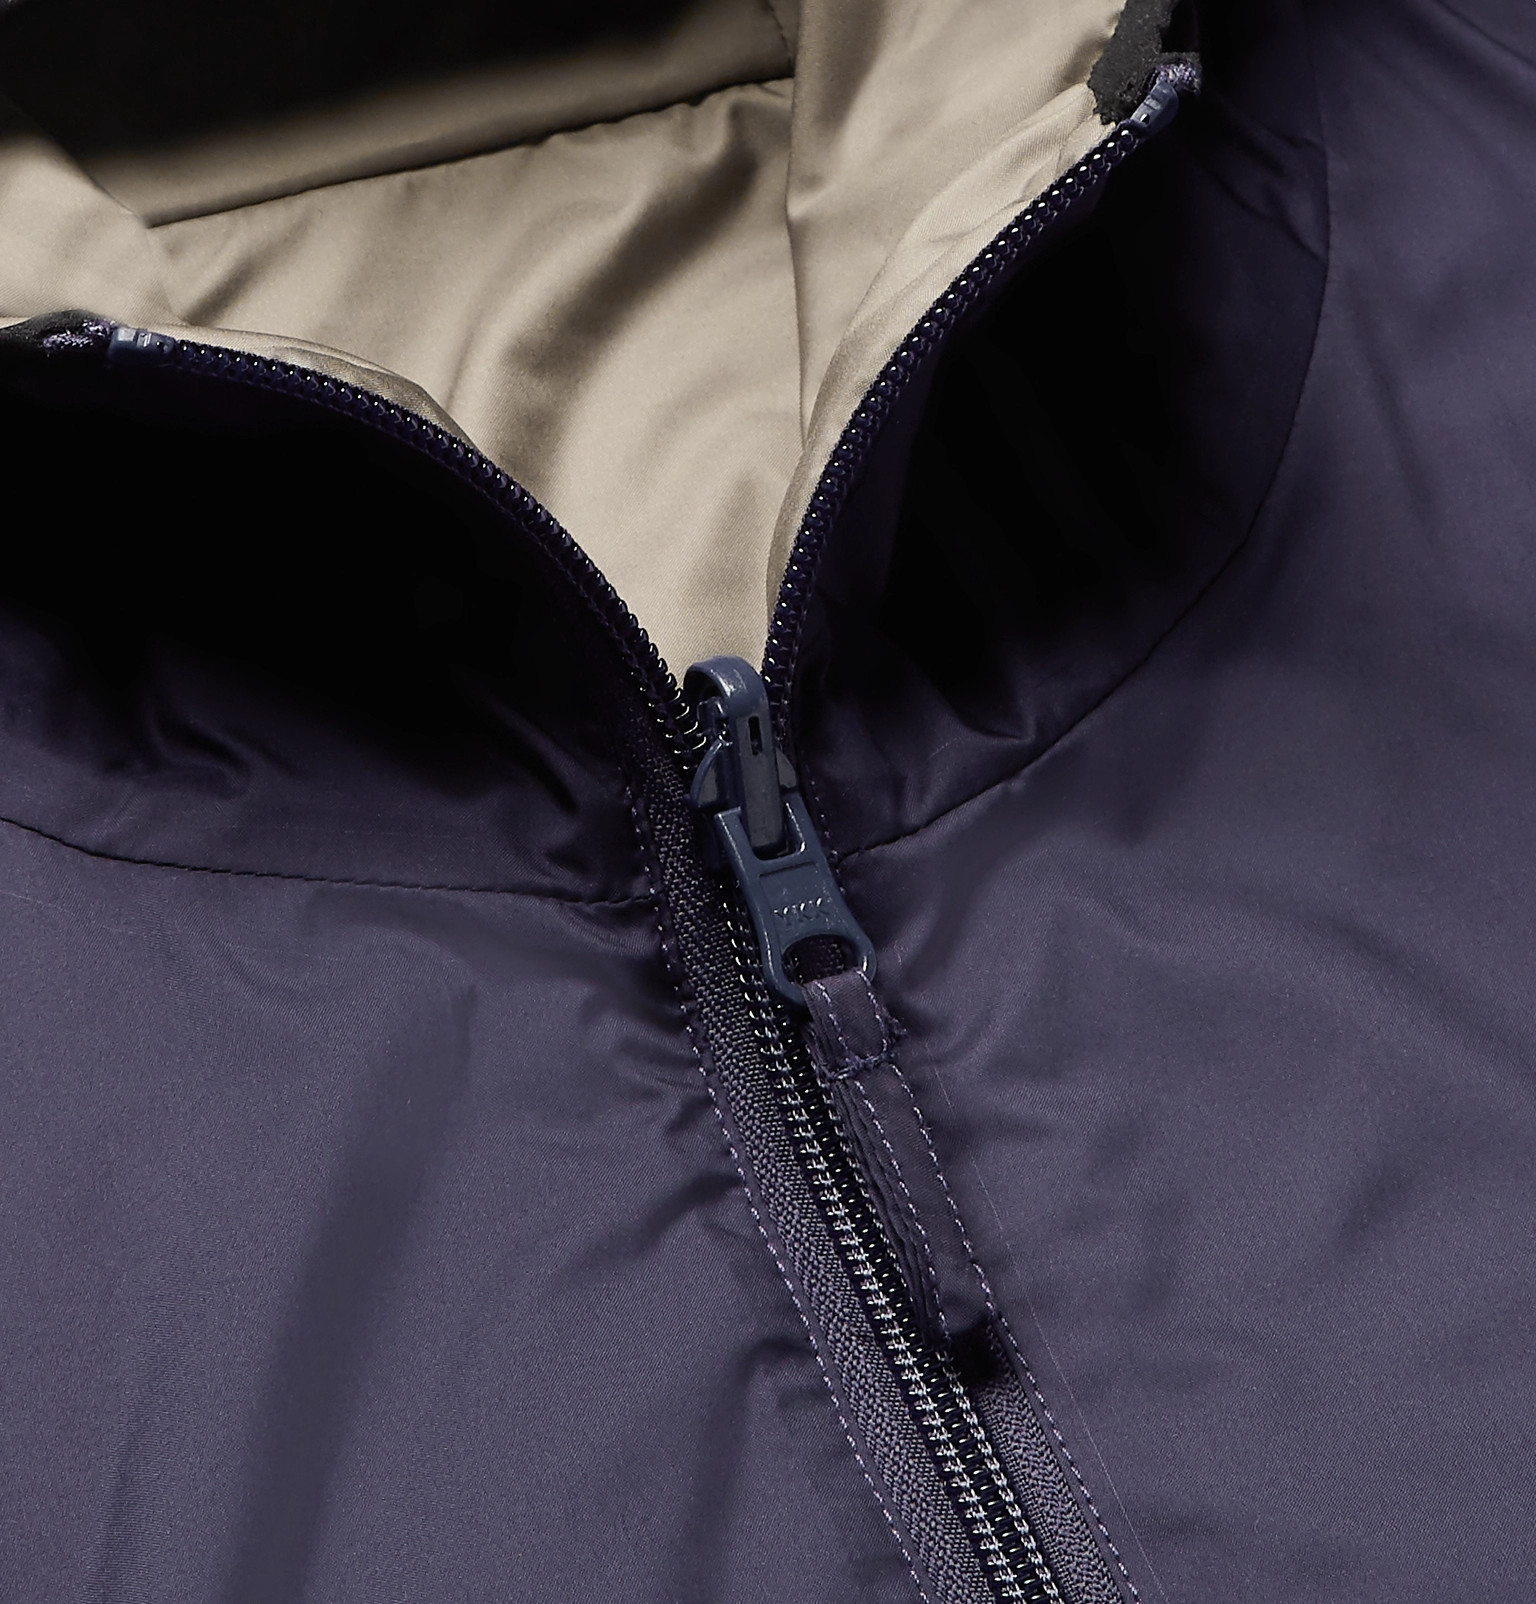 Aspesireversible Aspesireversible Jacket Hooded Aspesireversible Jacket Shell Hooded Shell Hooded Shell AqwS1